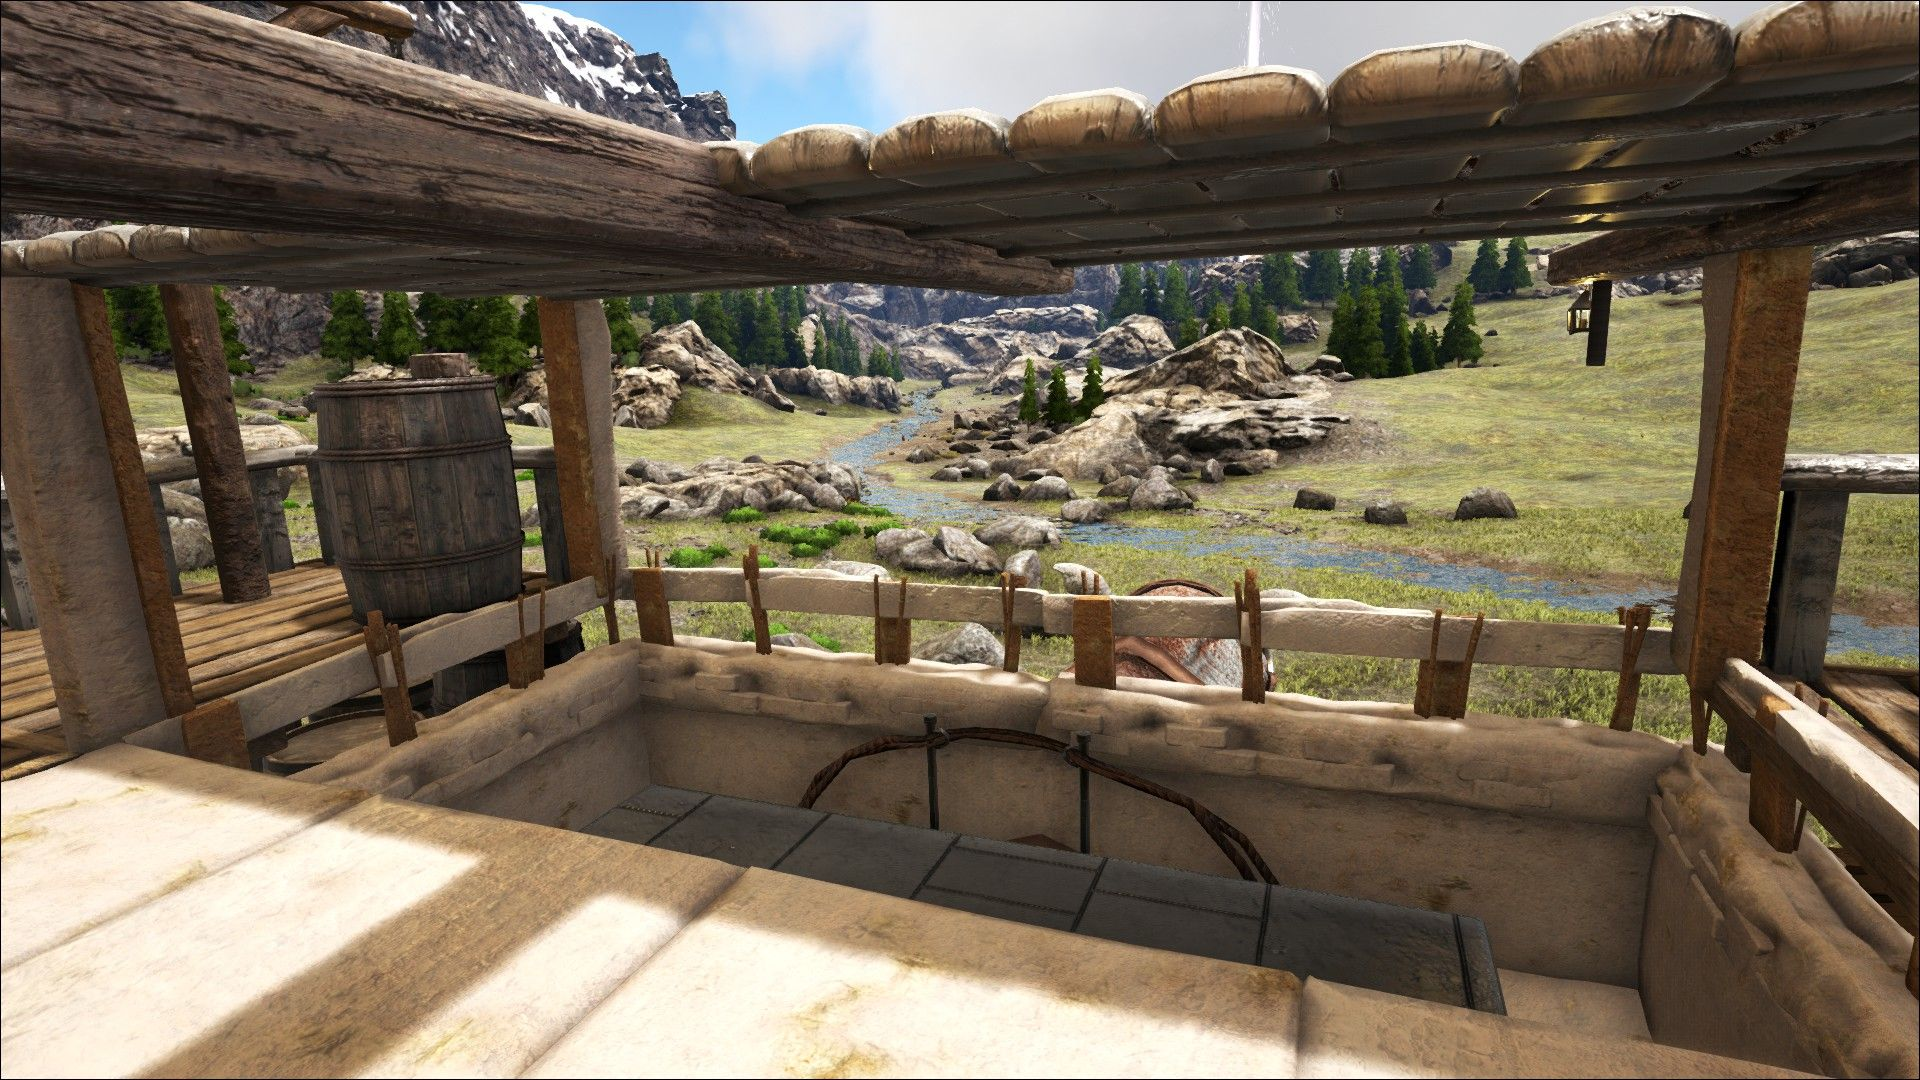 Pin by Costello on Ark Survival Evolved Base Ideas | Ark ...